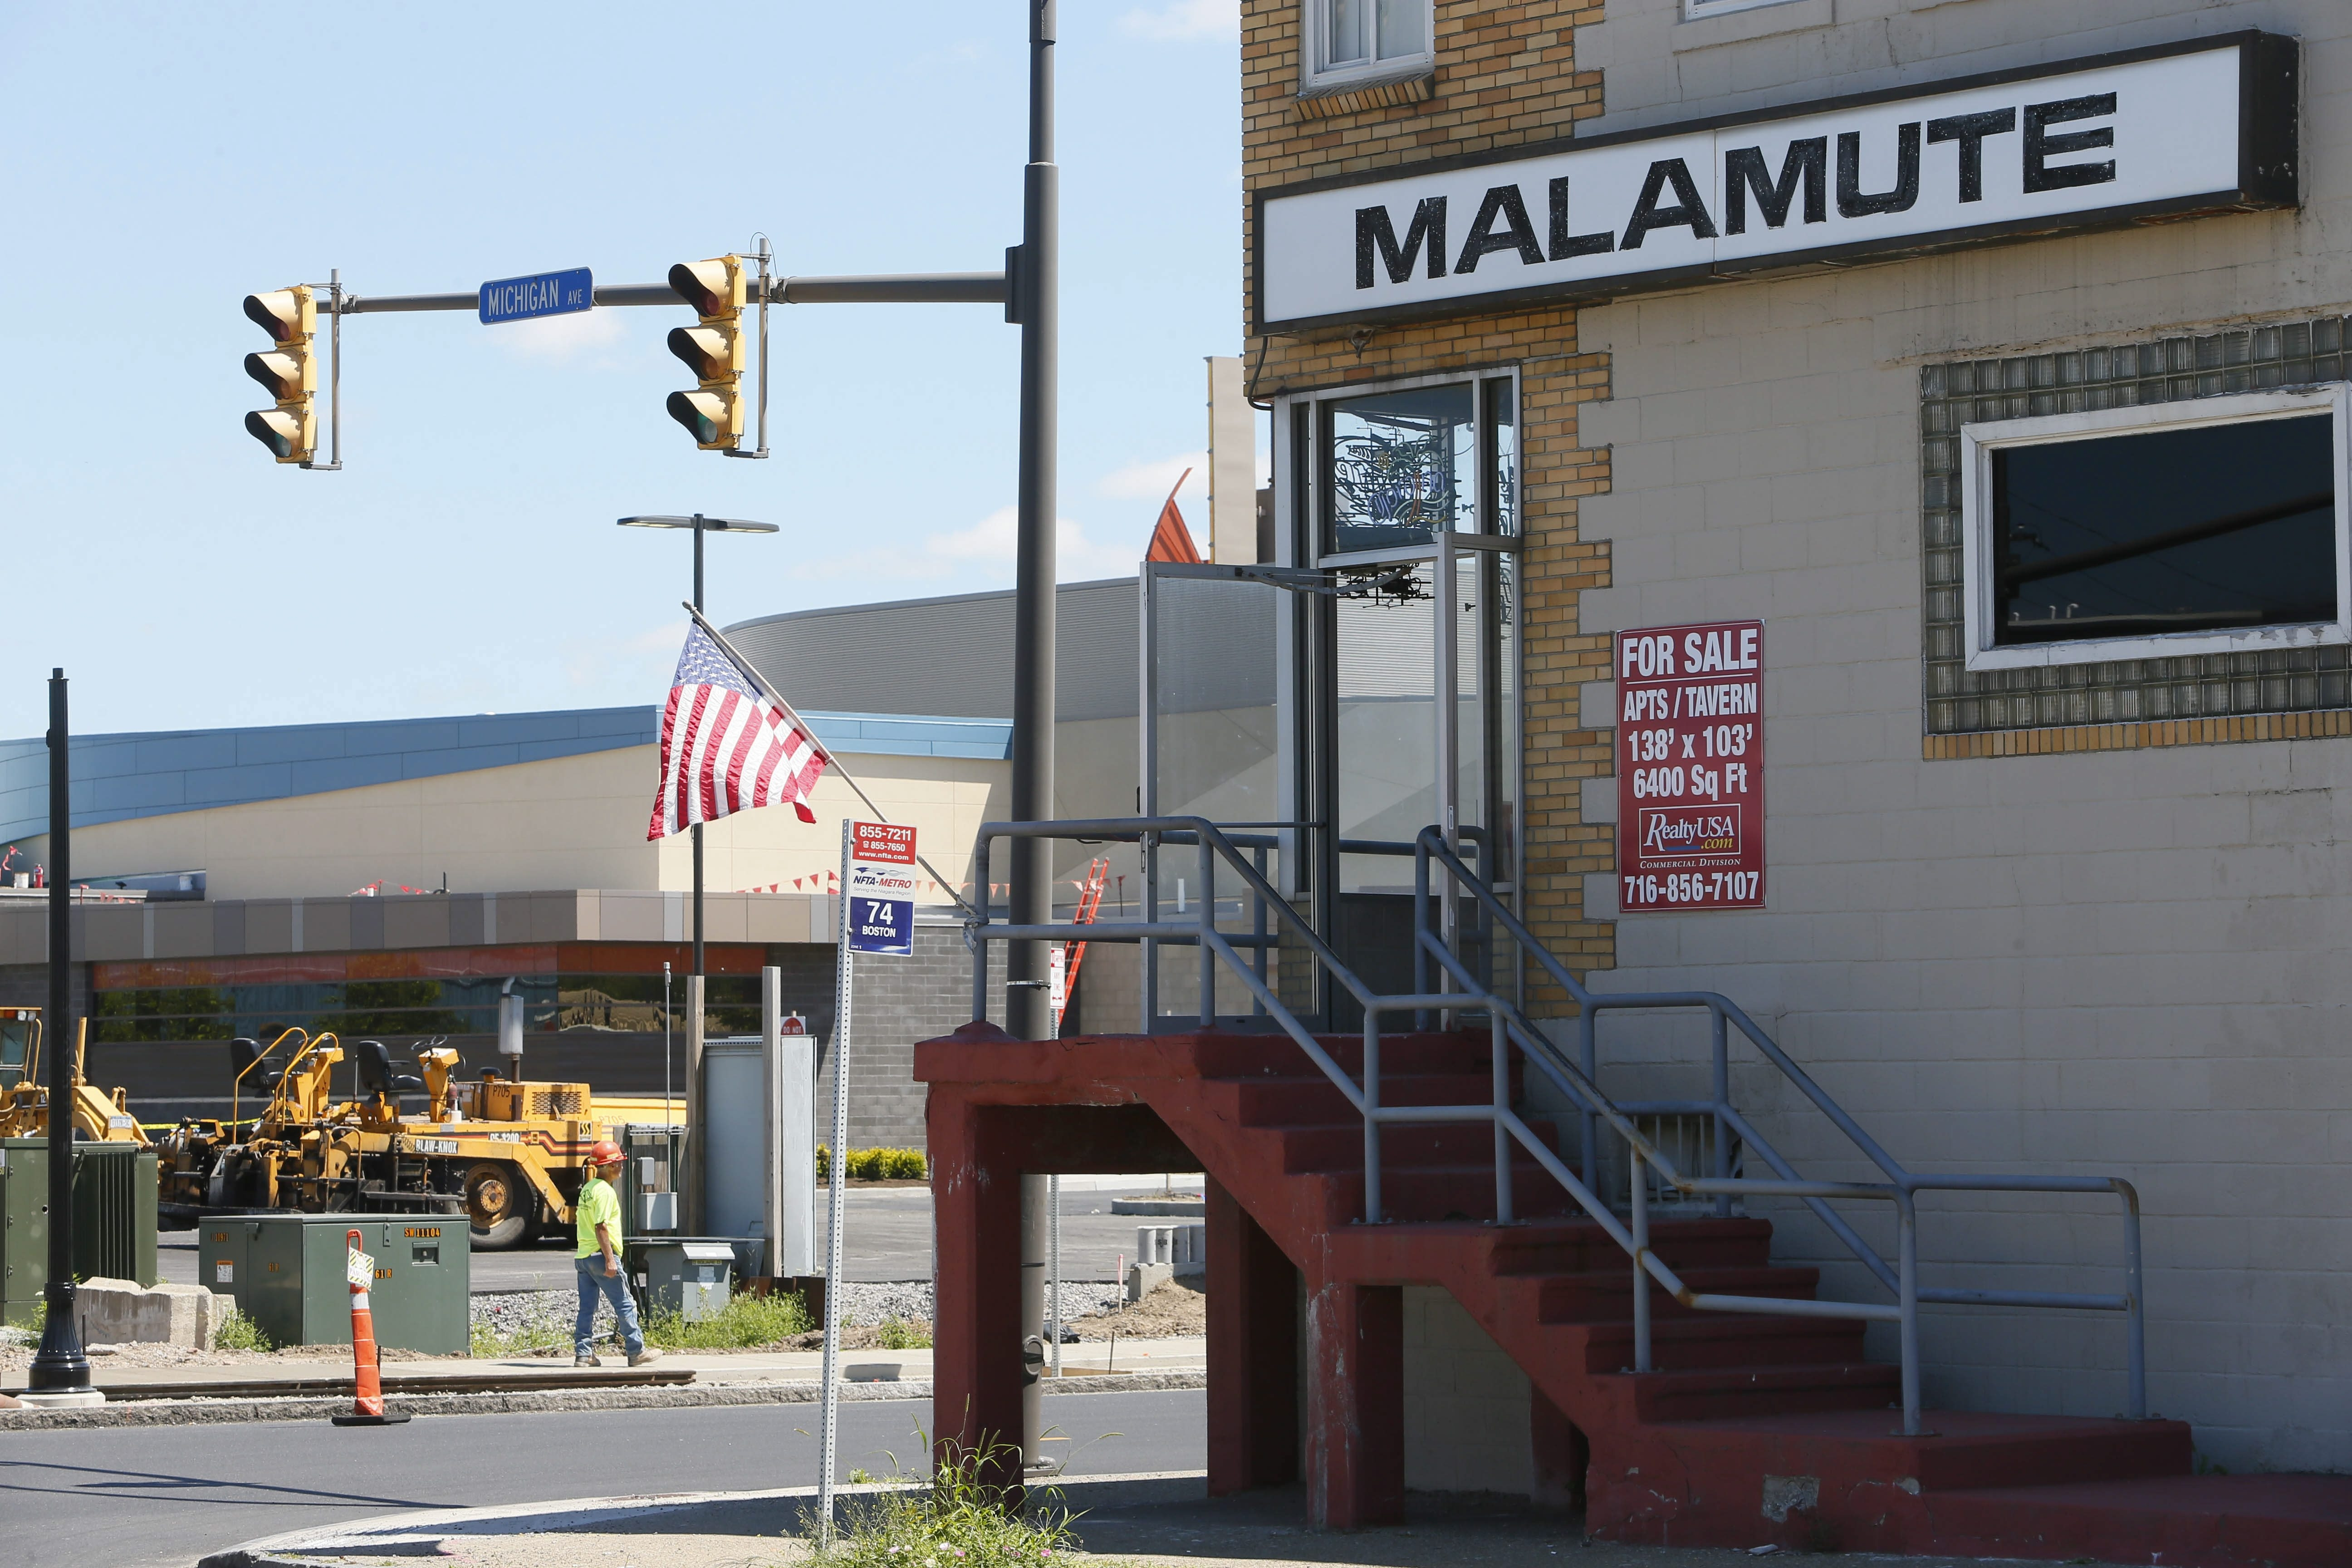 The Malamute tavern, a landmark on the corner of Michigan and South Park avenues, is located across the street from the Seneca Buffalo Creek Casino. The Malamute was sold last summer.